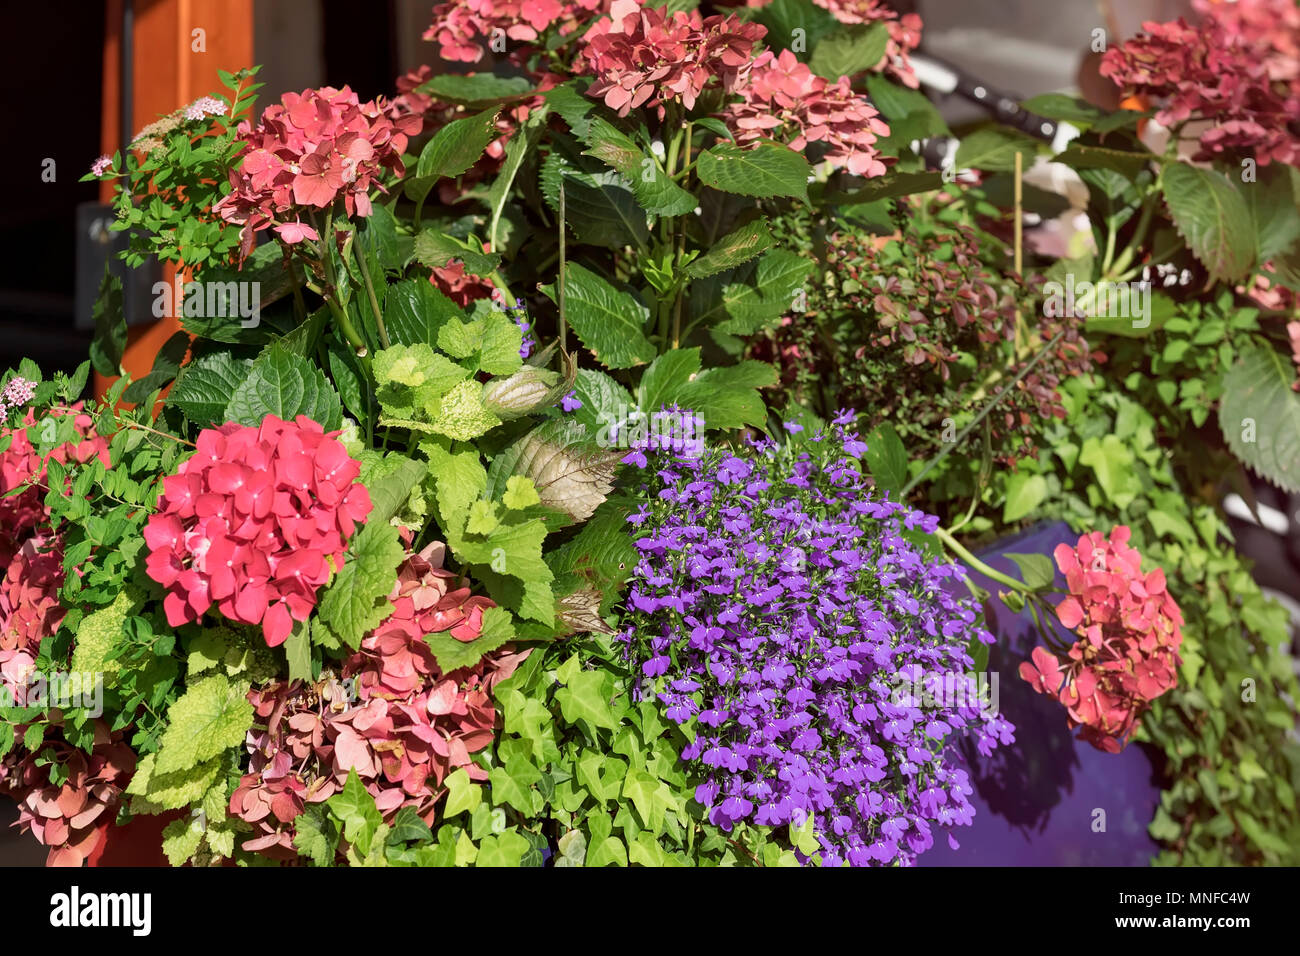 Colorful Brightly And Vivid Blooming Summer Or Spring Flowers With